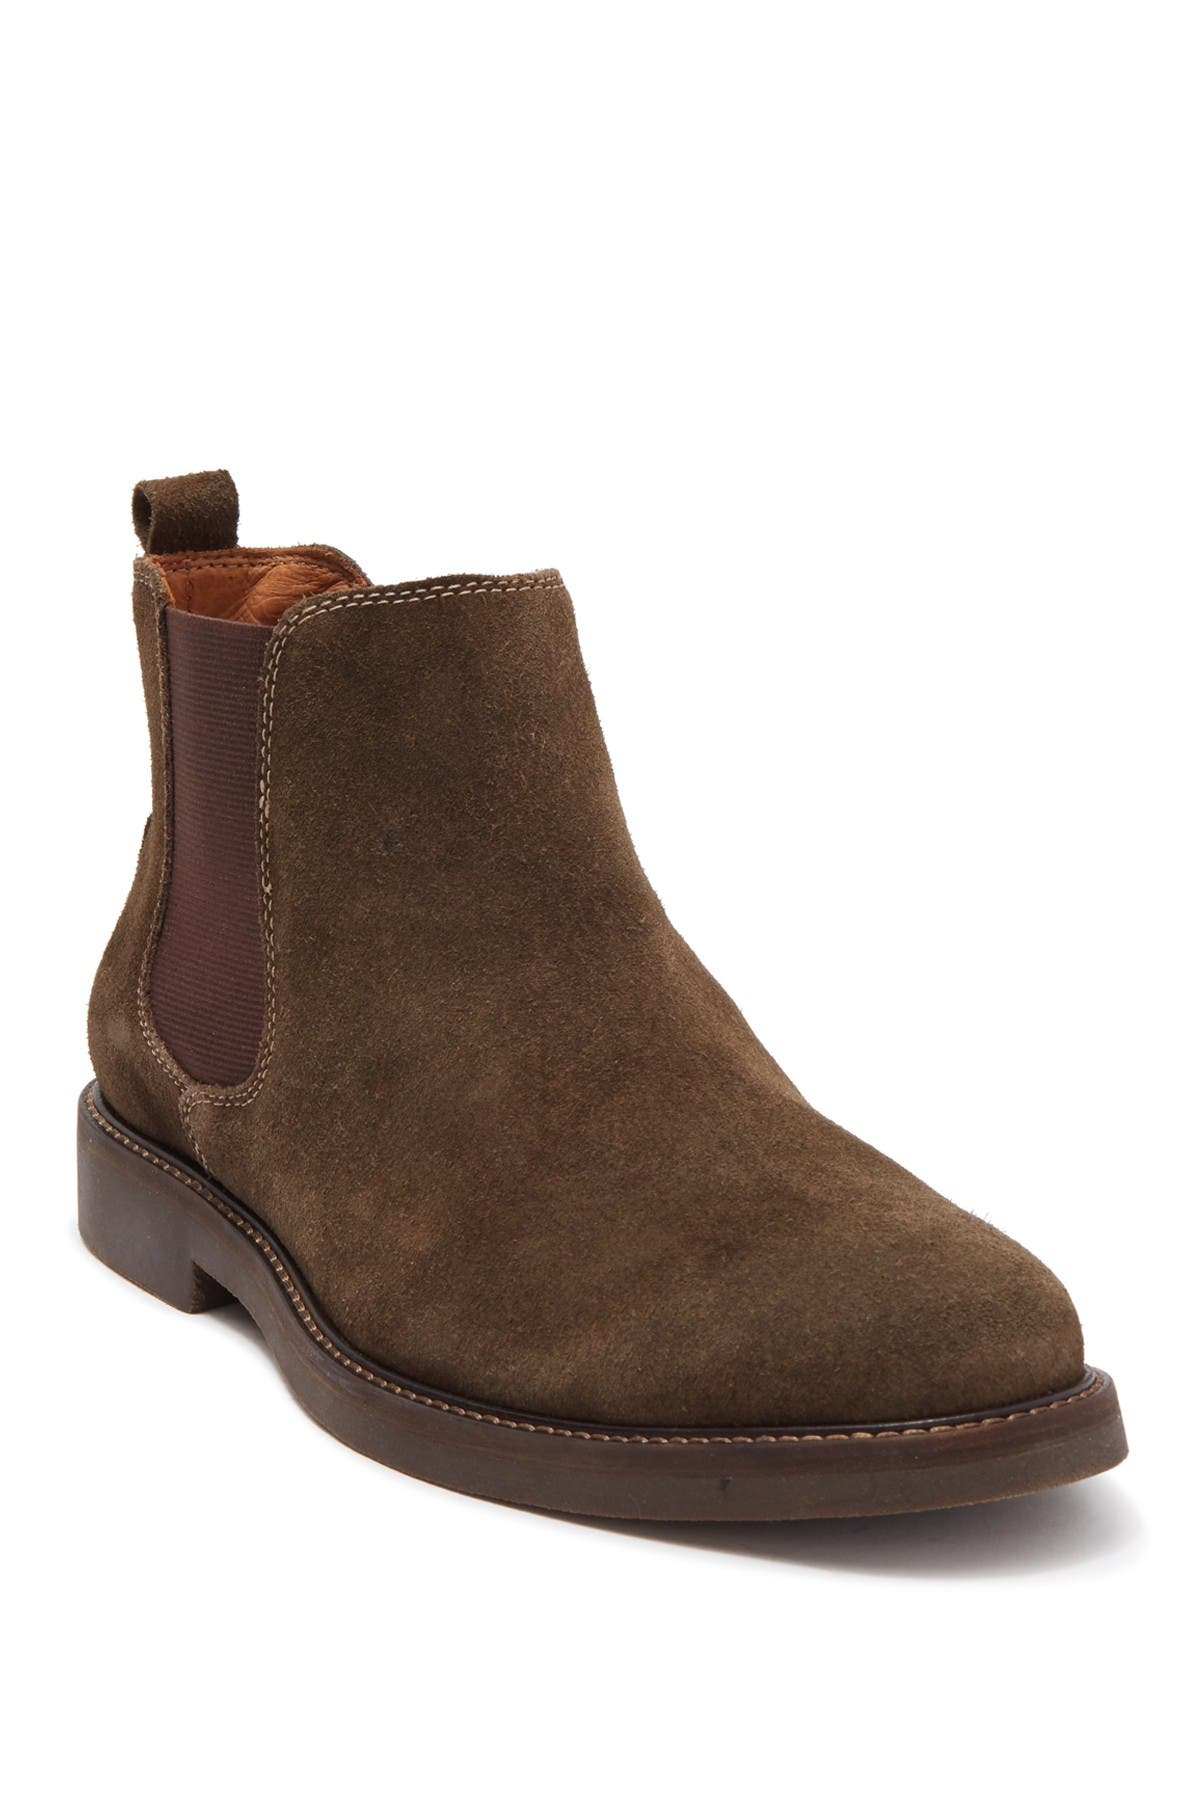 Image of Marc Joseph New York Ande Suede Chelsea Boot